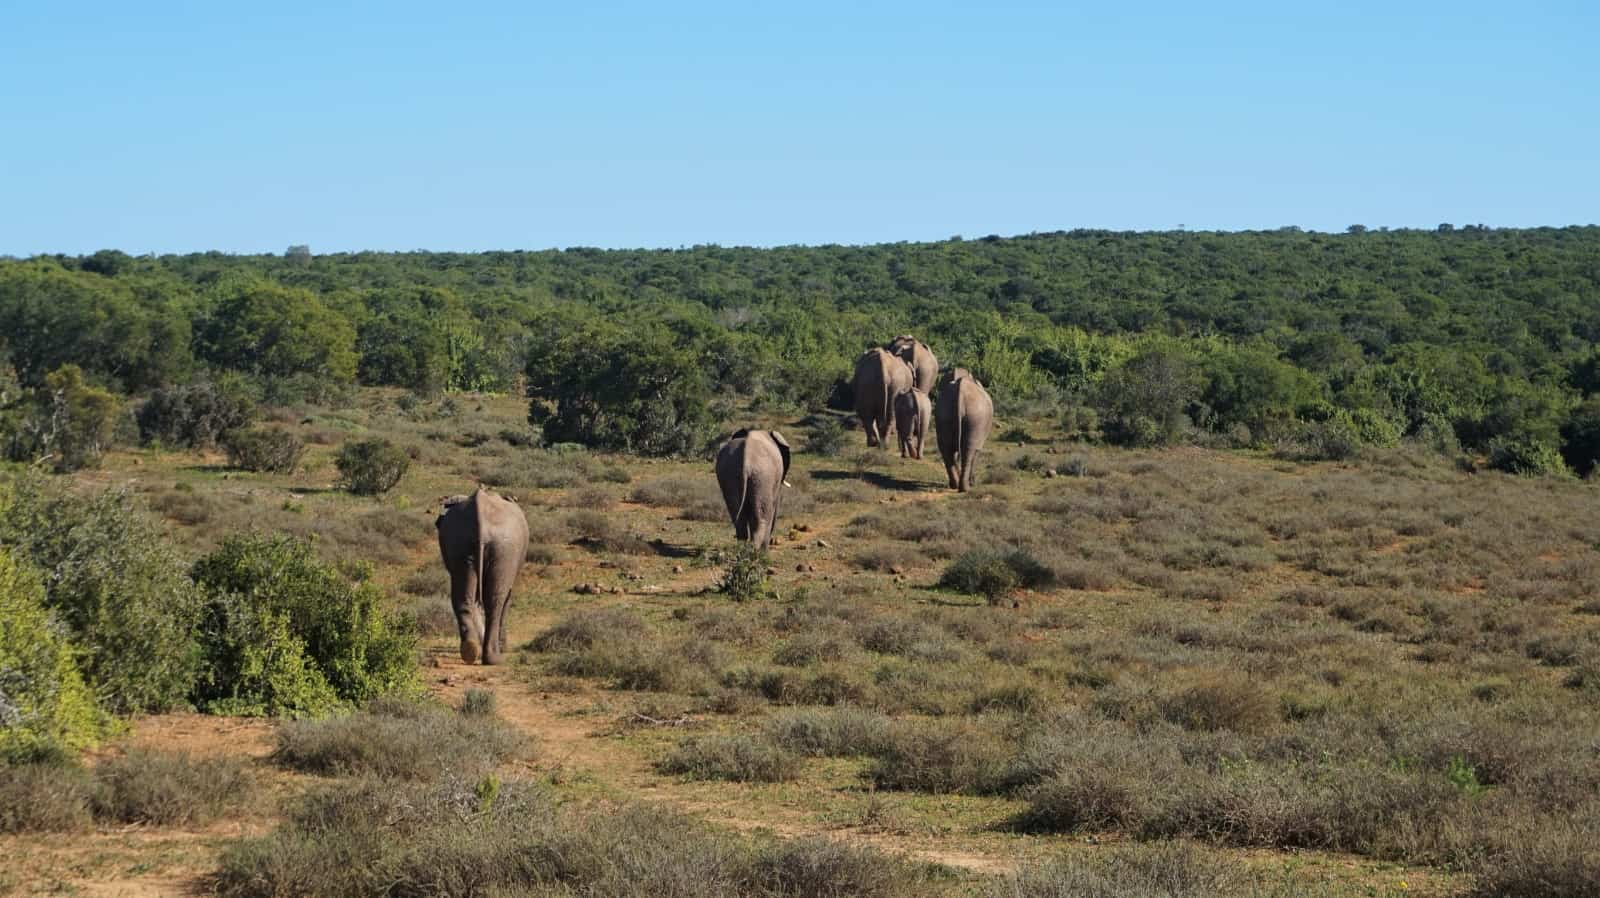 African elephants walking into the bush in Addo Elephant National Park, South Africa